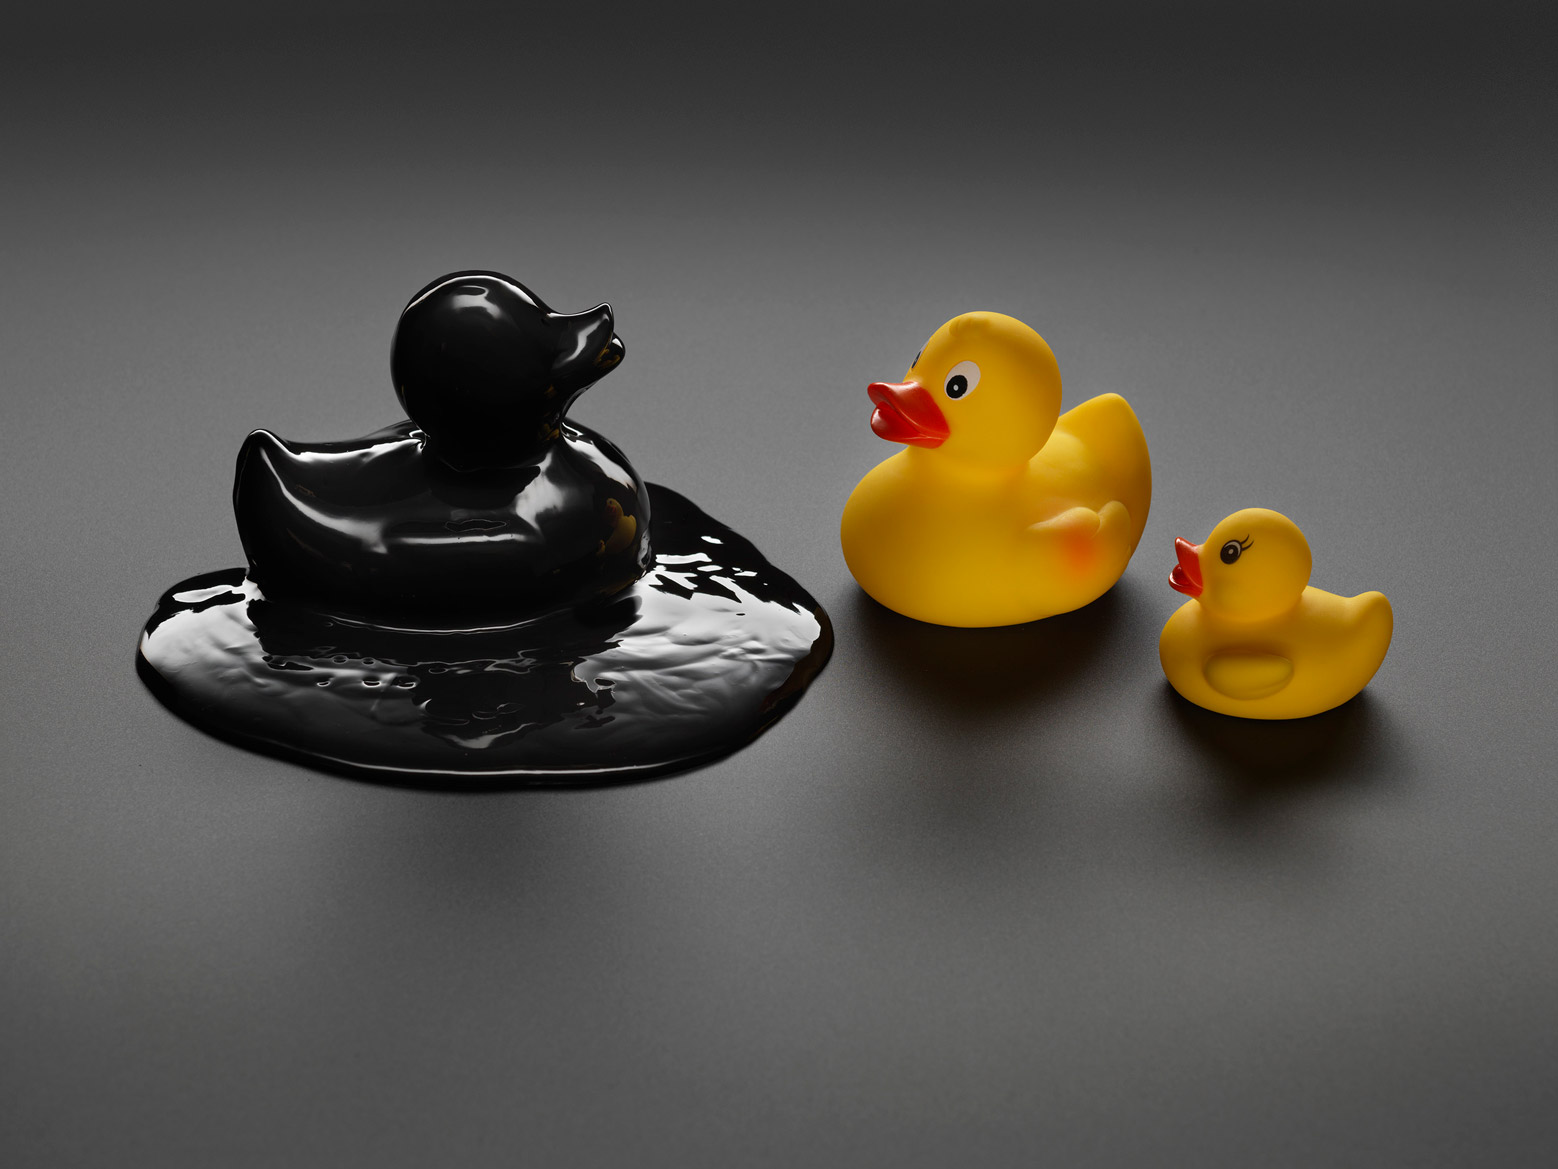 Still life photo of rubber ducks symbolising the effect of pollution on wildlife